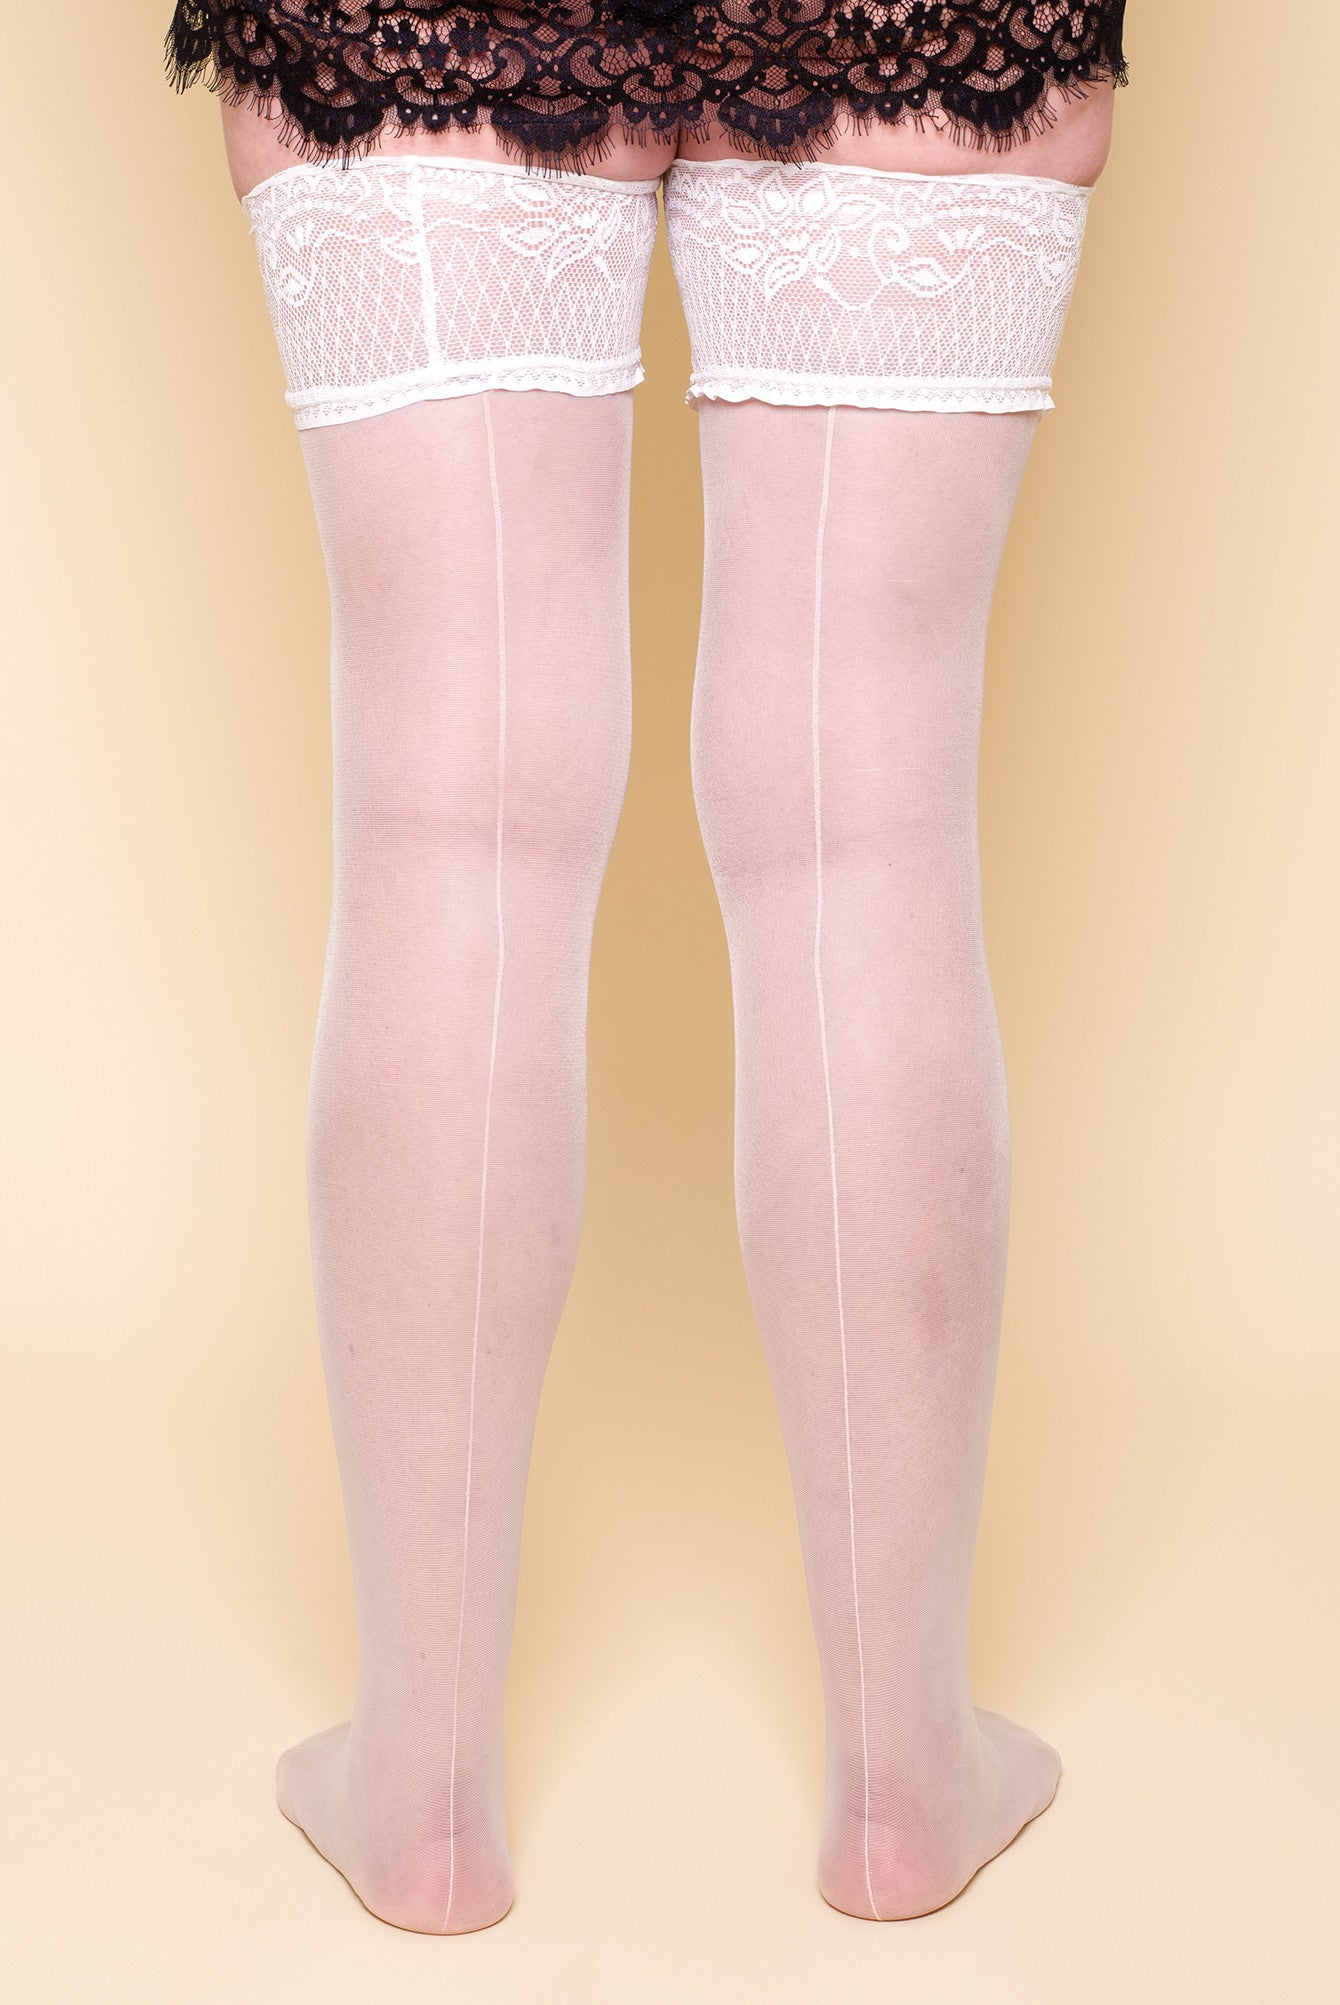 White Plus Size Hold-Ups Stockings Lace top nylons